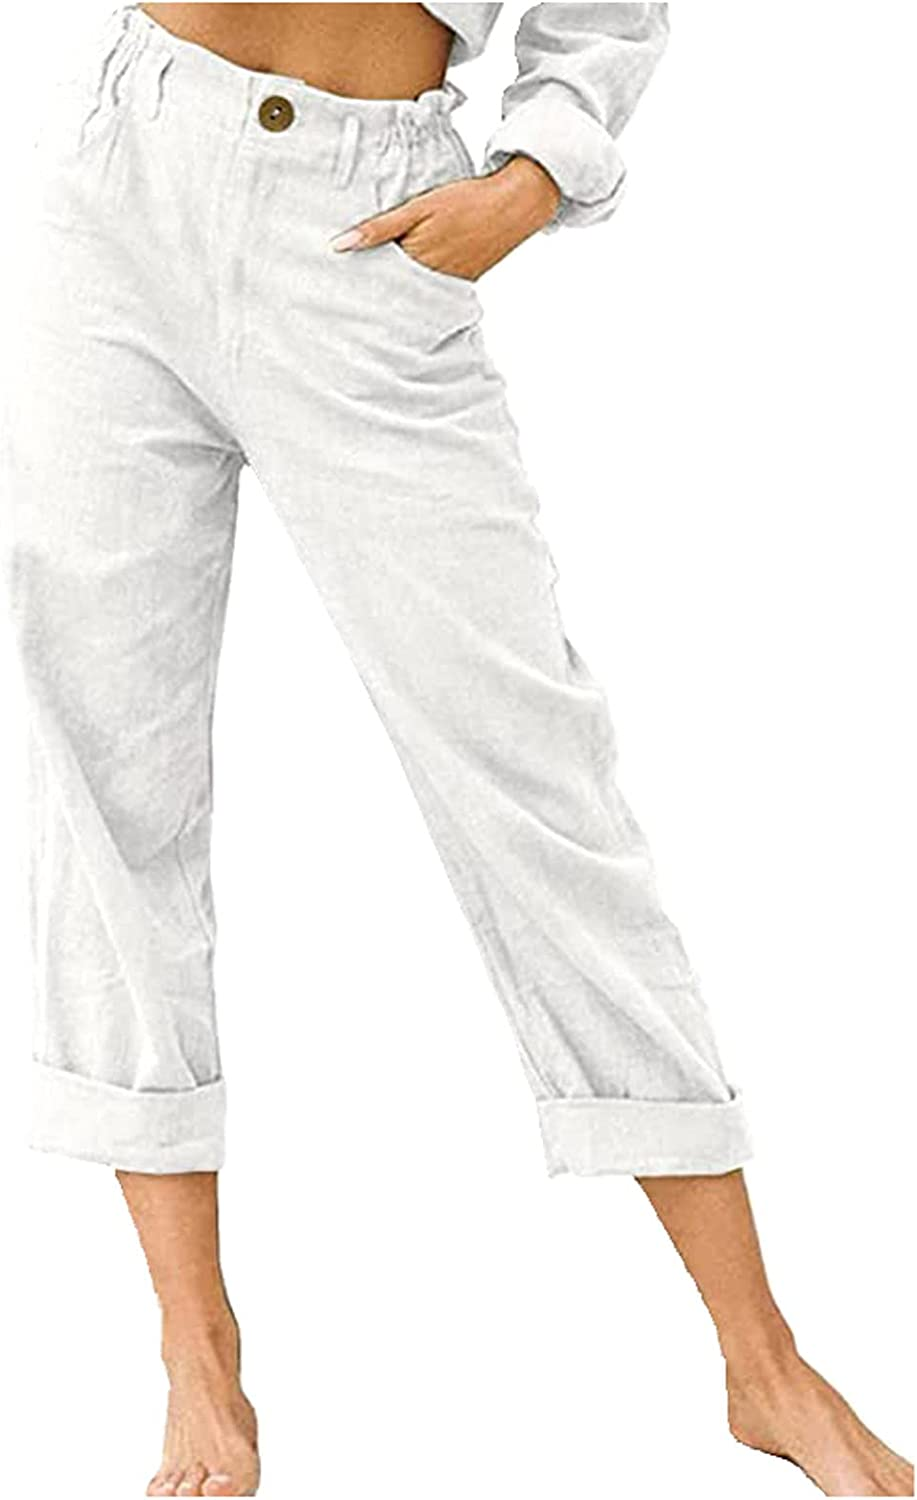 Women's Cotton Linen Long Pants Casual Wide Leg Elastic Waist Flat Front Loose Fit Trousers with Pockets